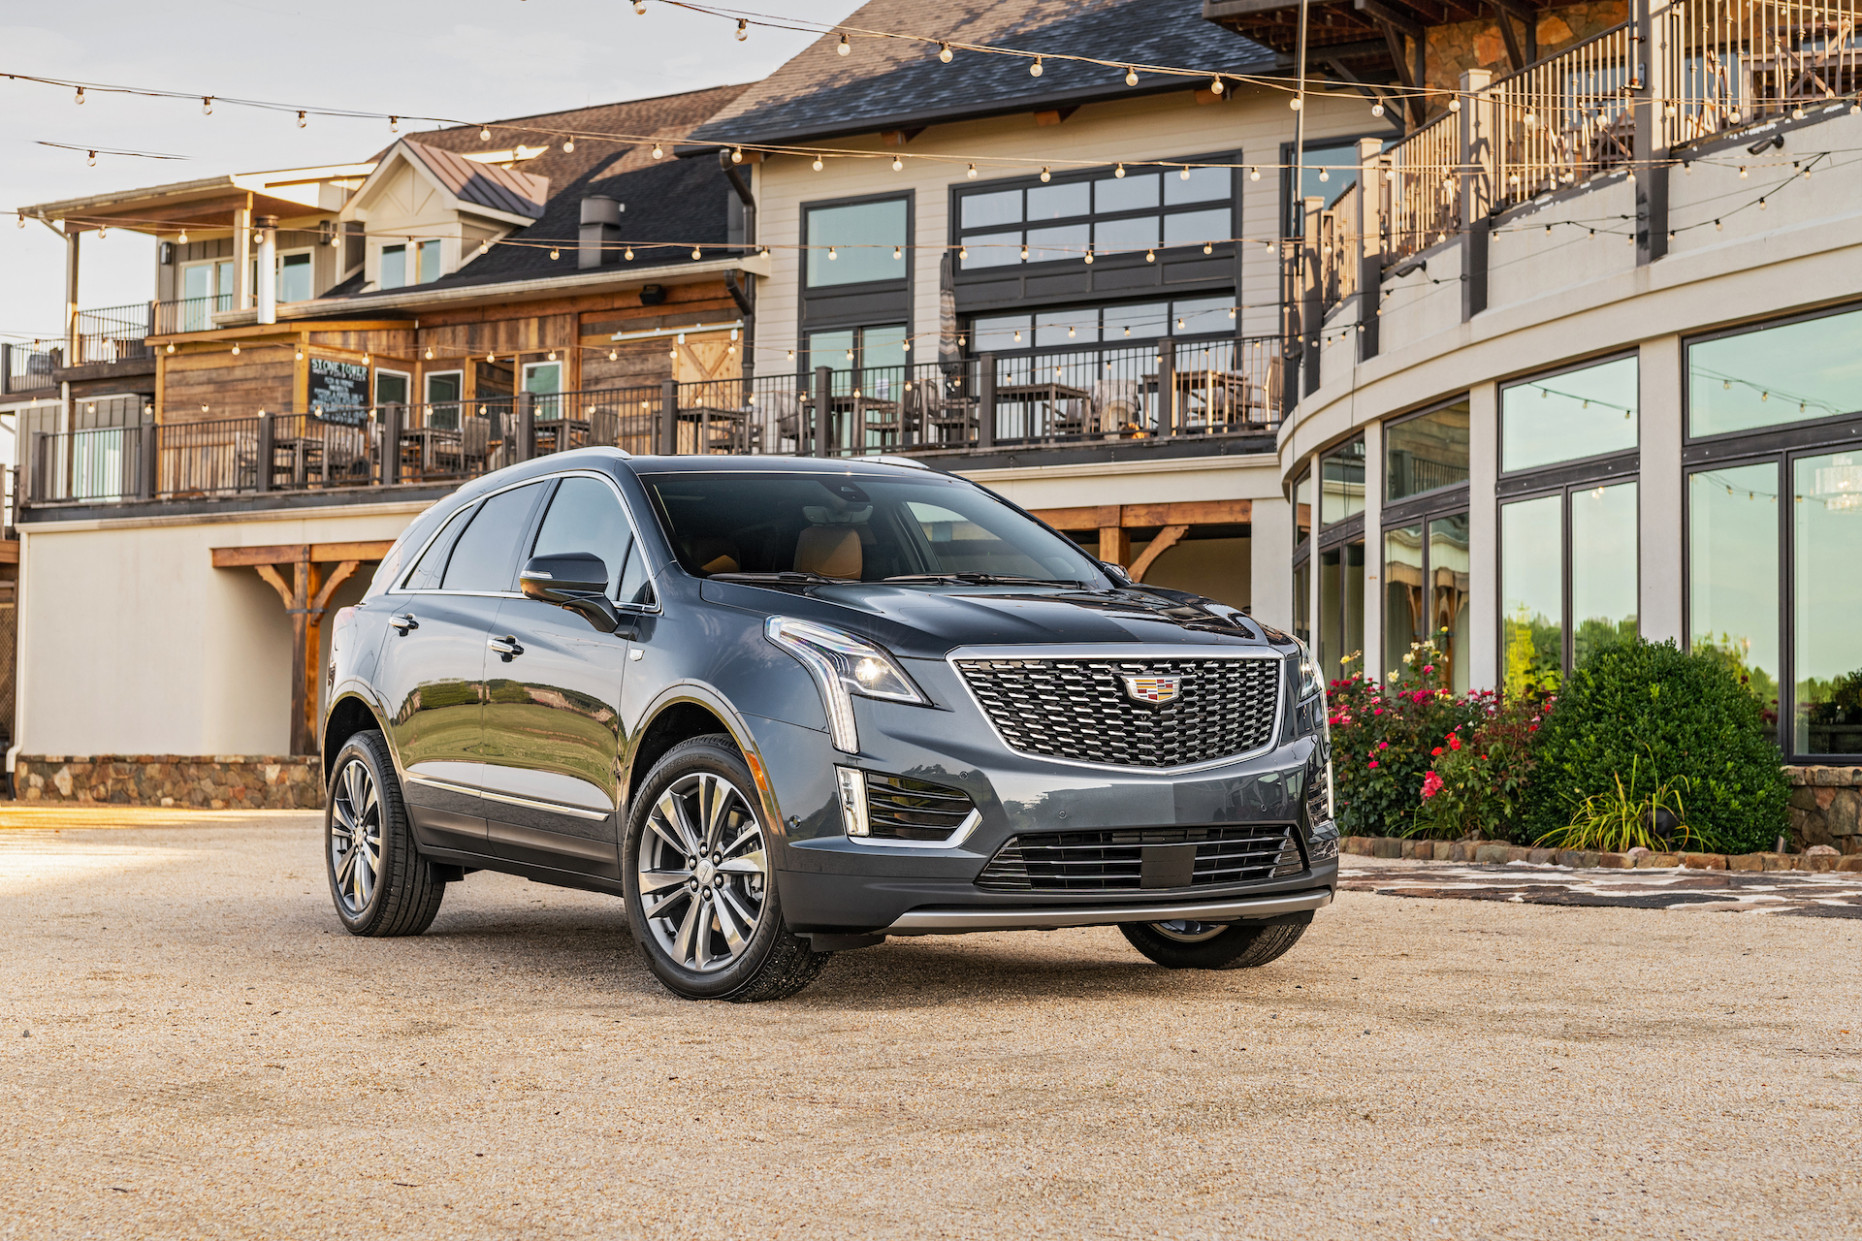 11 Cadillac XT11 Review, Ratings, Specs, Prices, and Photos - The ..